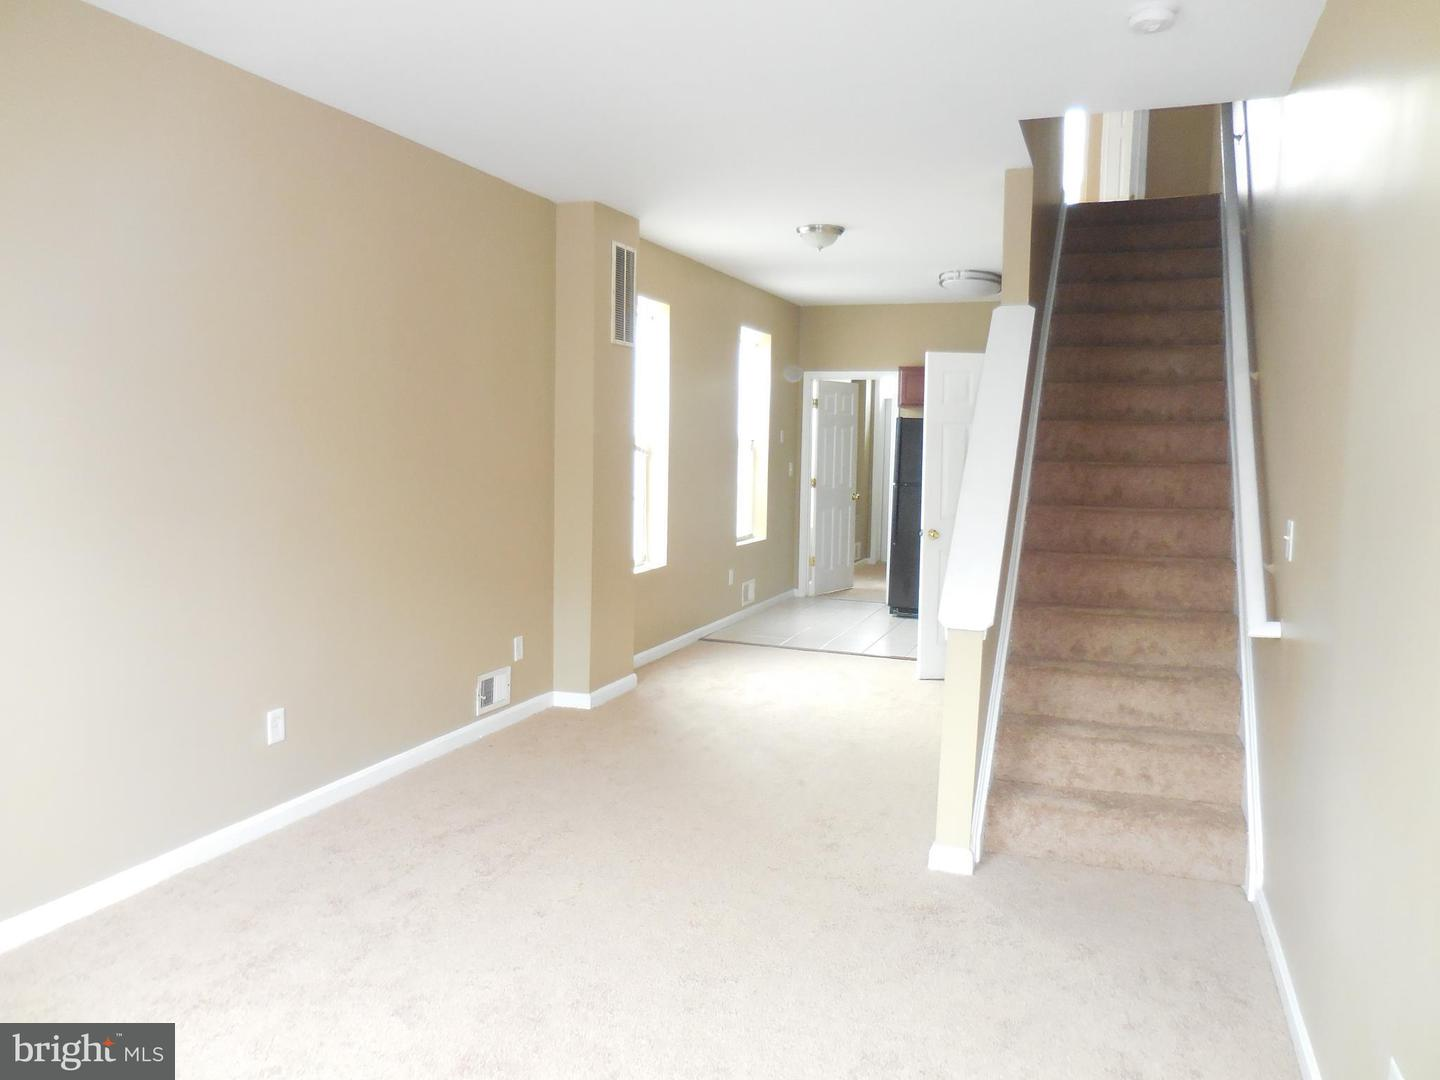 Other Residential for Rent at 400 Montford Ave N Baltimore, Maryland 21224 United States